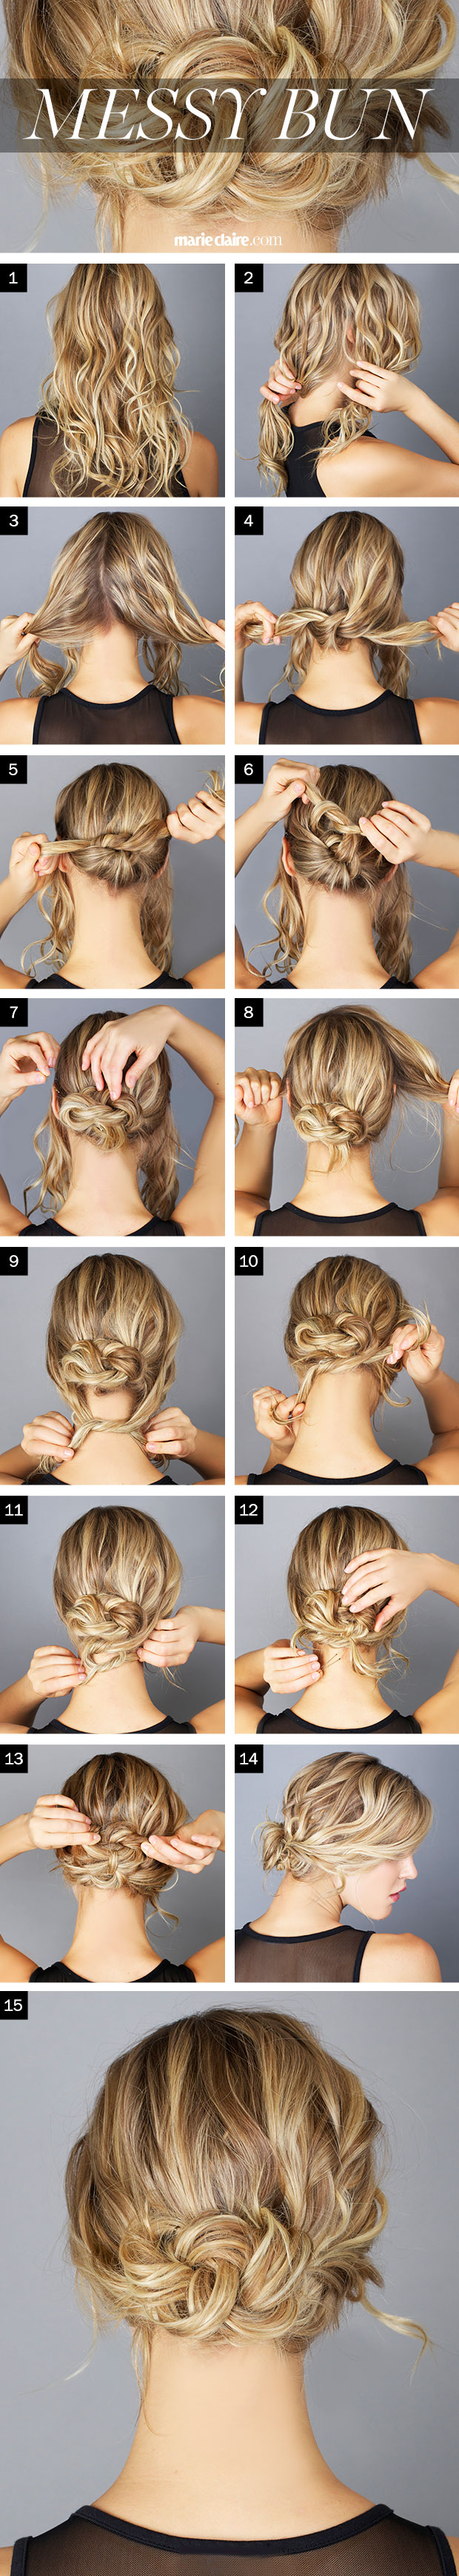 knotted-messy-bun